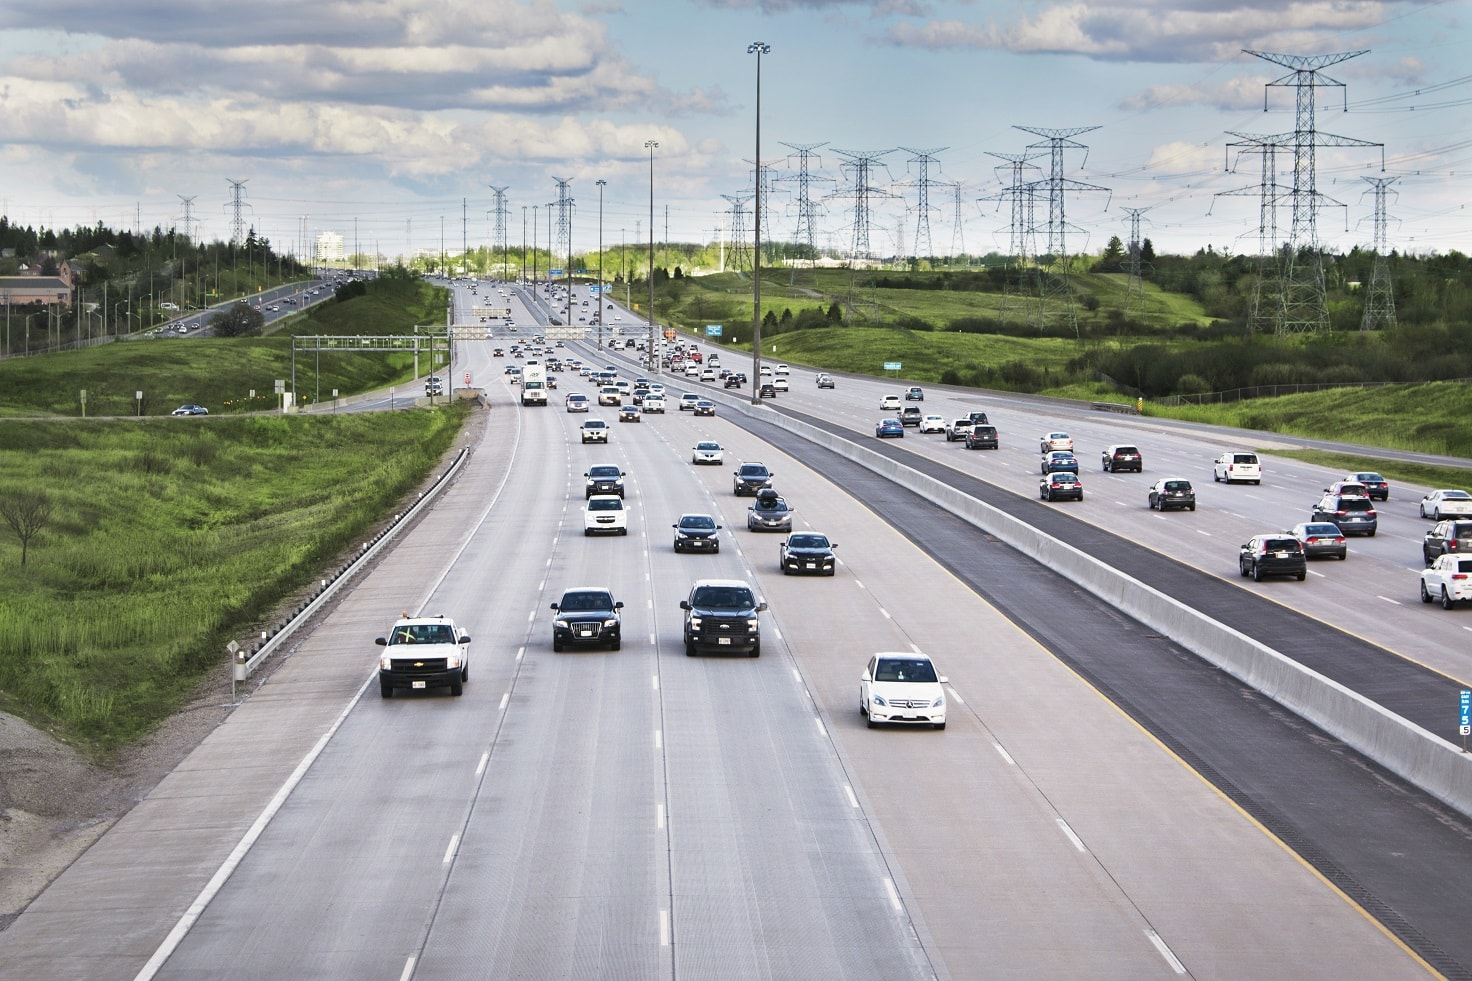 407 ETR finds 66% of Ontarians Road Trip